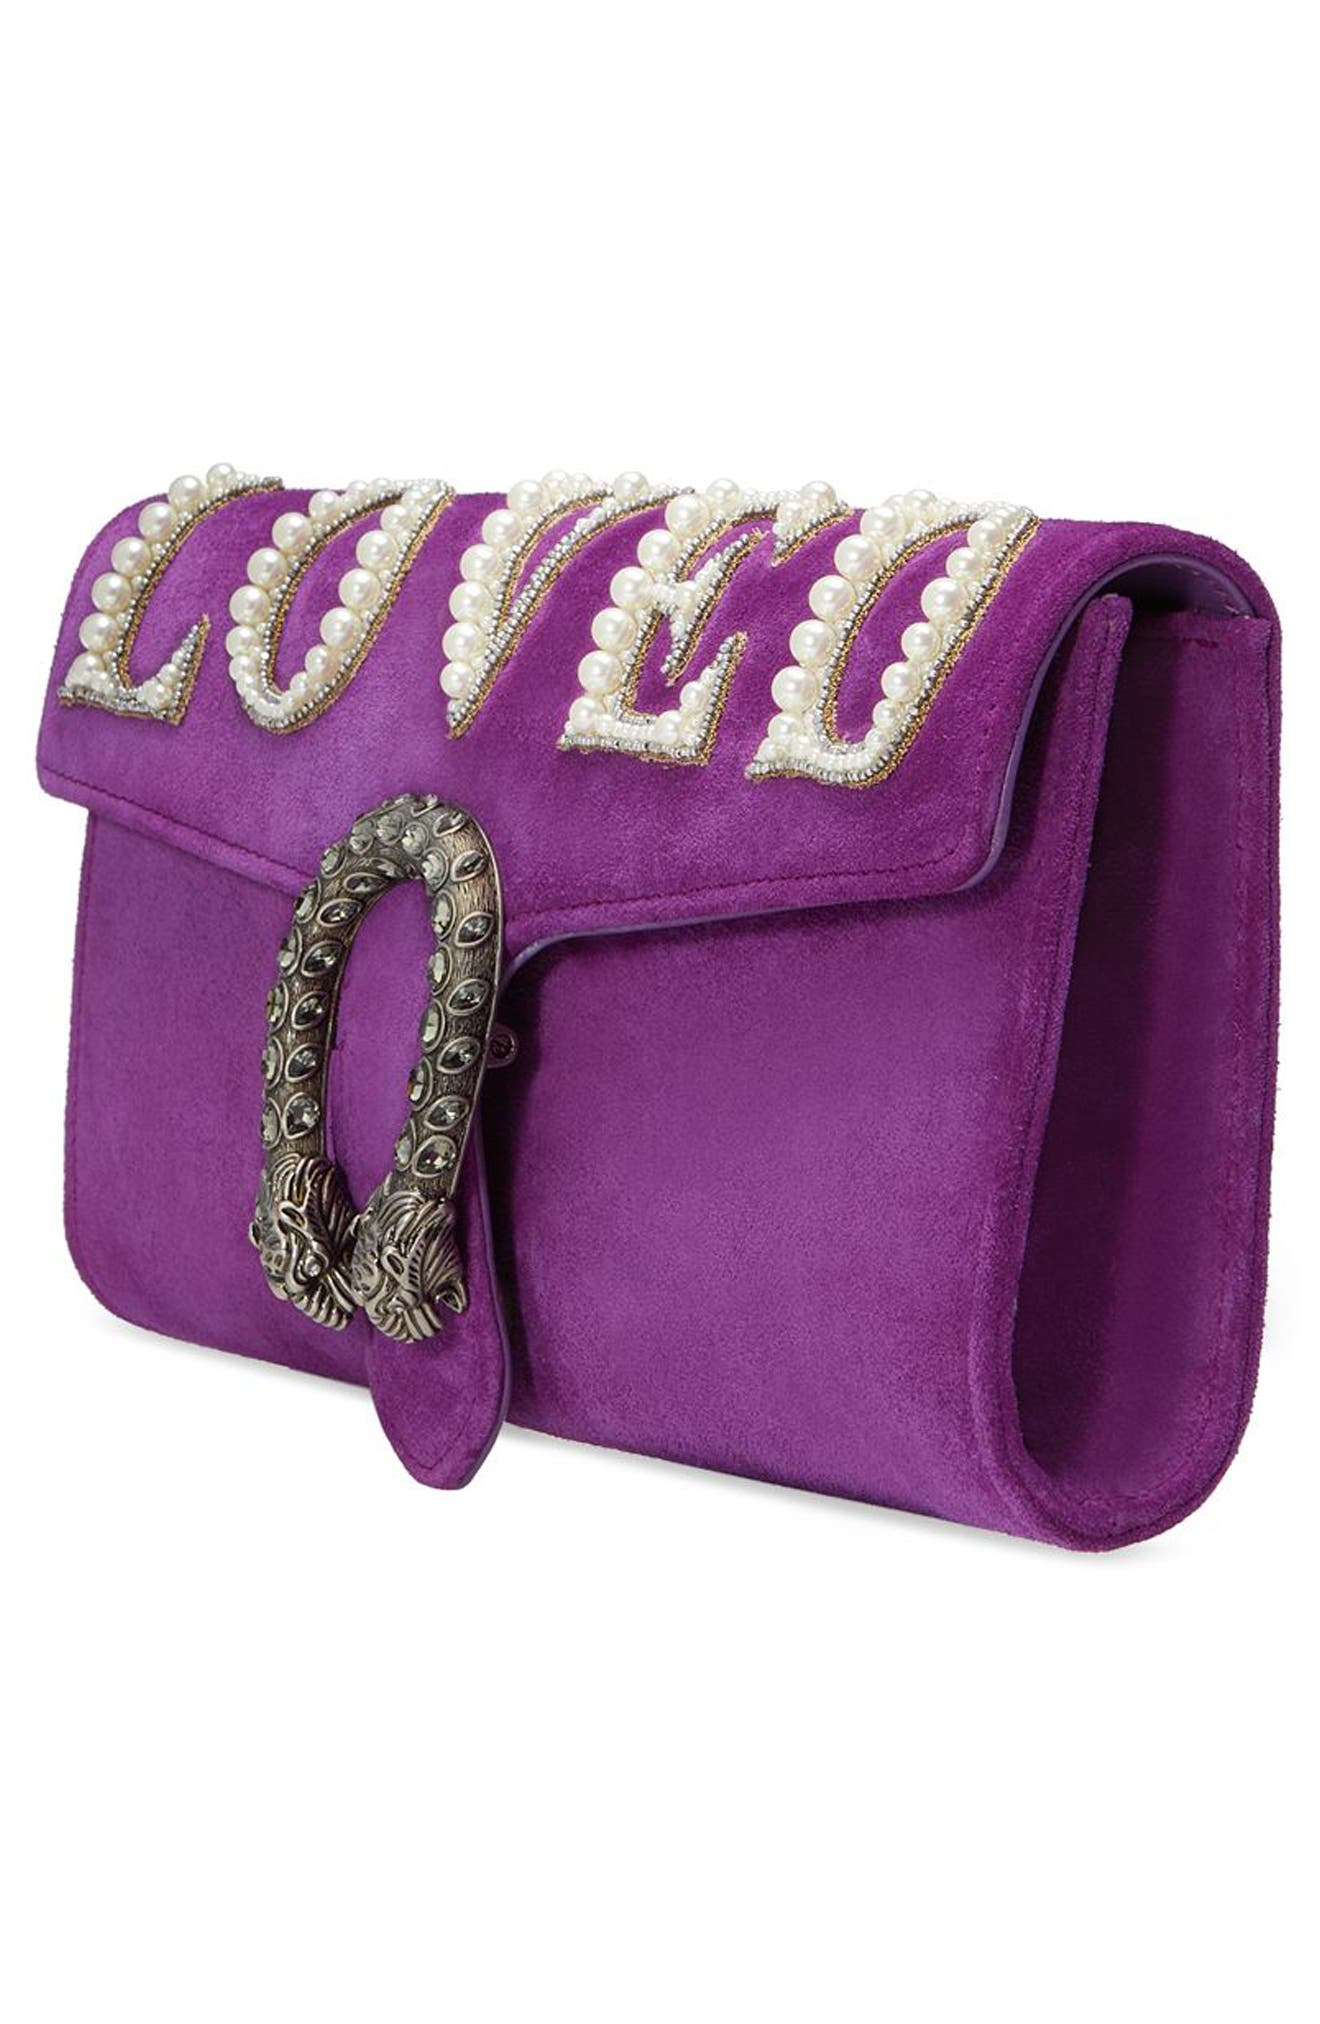 Dionysus Suede Clutch,                             Alternate thumbnail 4, color,                             559